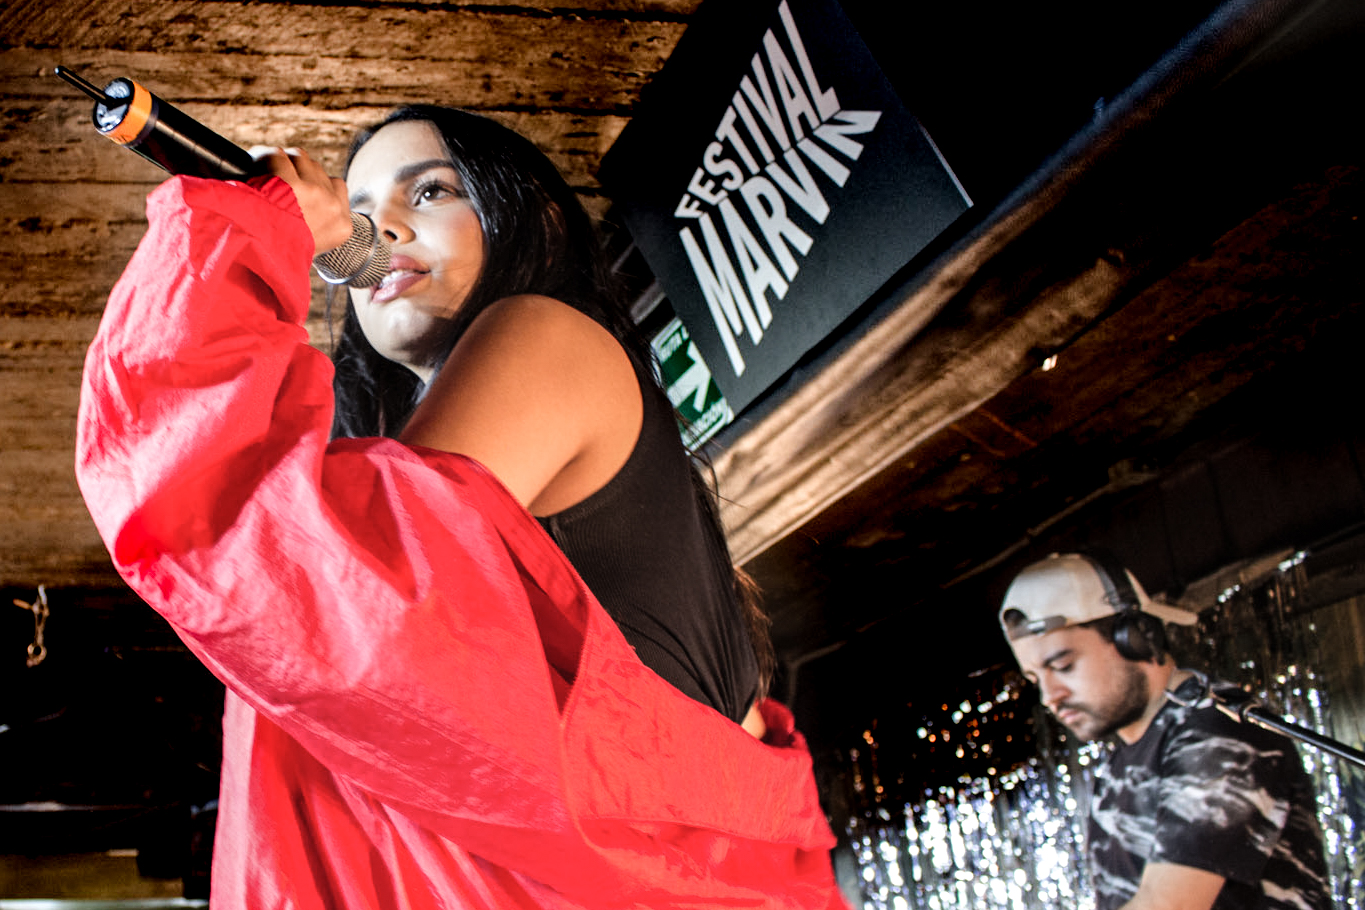 PHOTOS: A Look at Festival Marvin's Boricua Hip-Hop, Guitar Raves, and Primordial Punk